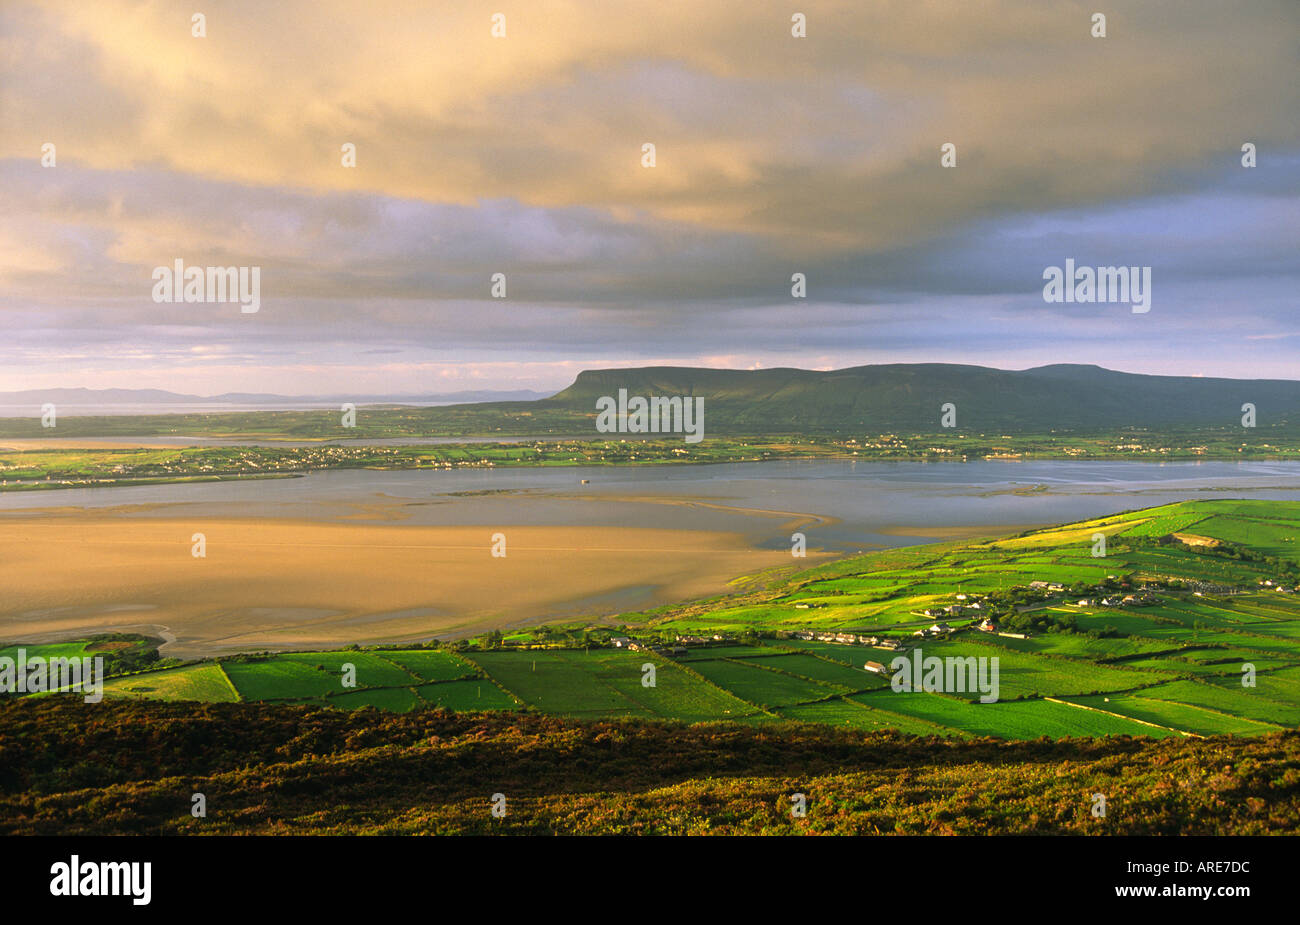 Time Difference between Sligo, Ireland and the World